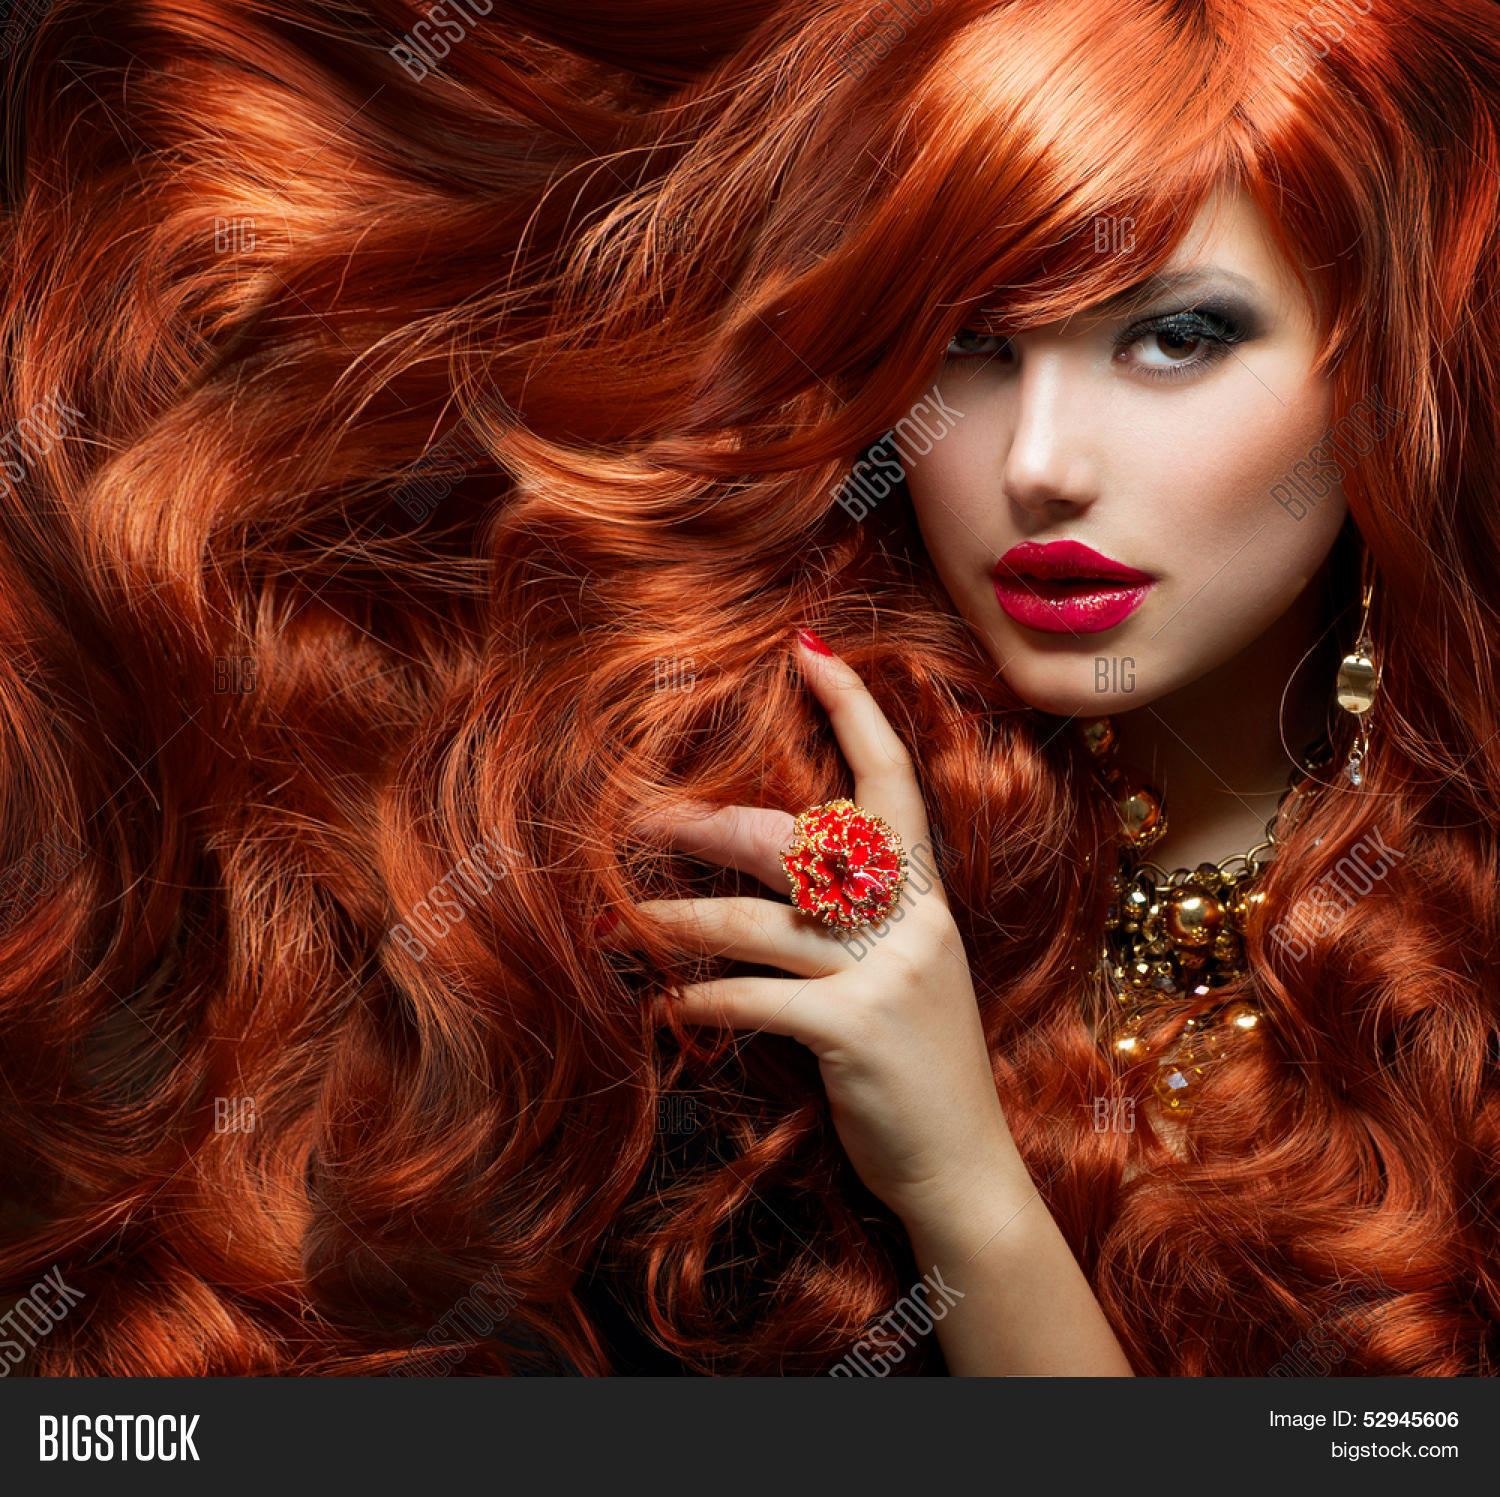 Long Curly Red Hair Image Photo Free Trial Bigstock